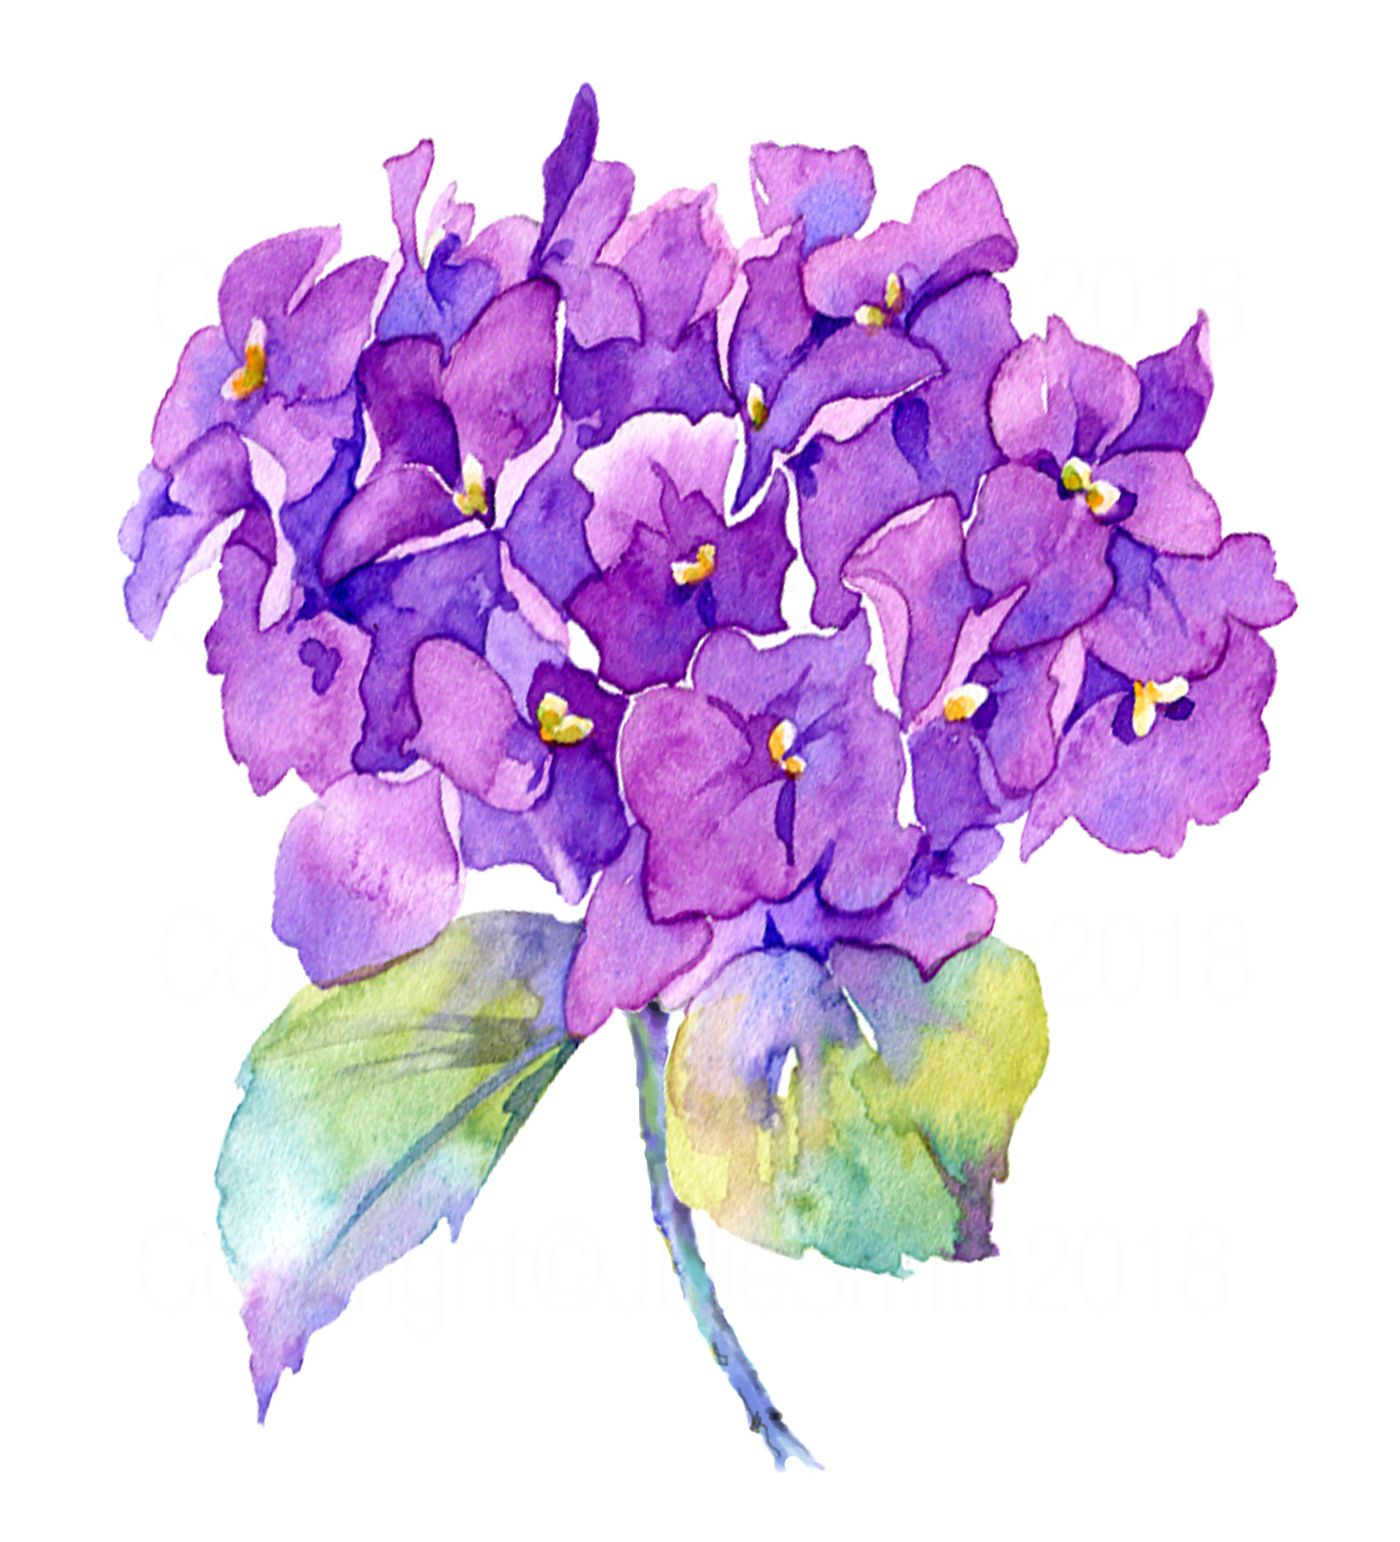 Pin by Cindy Price on Watercolor   Watercolor flowers ...